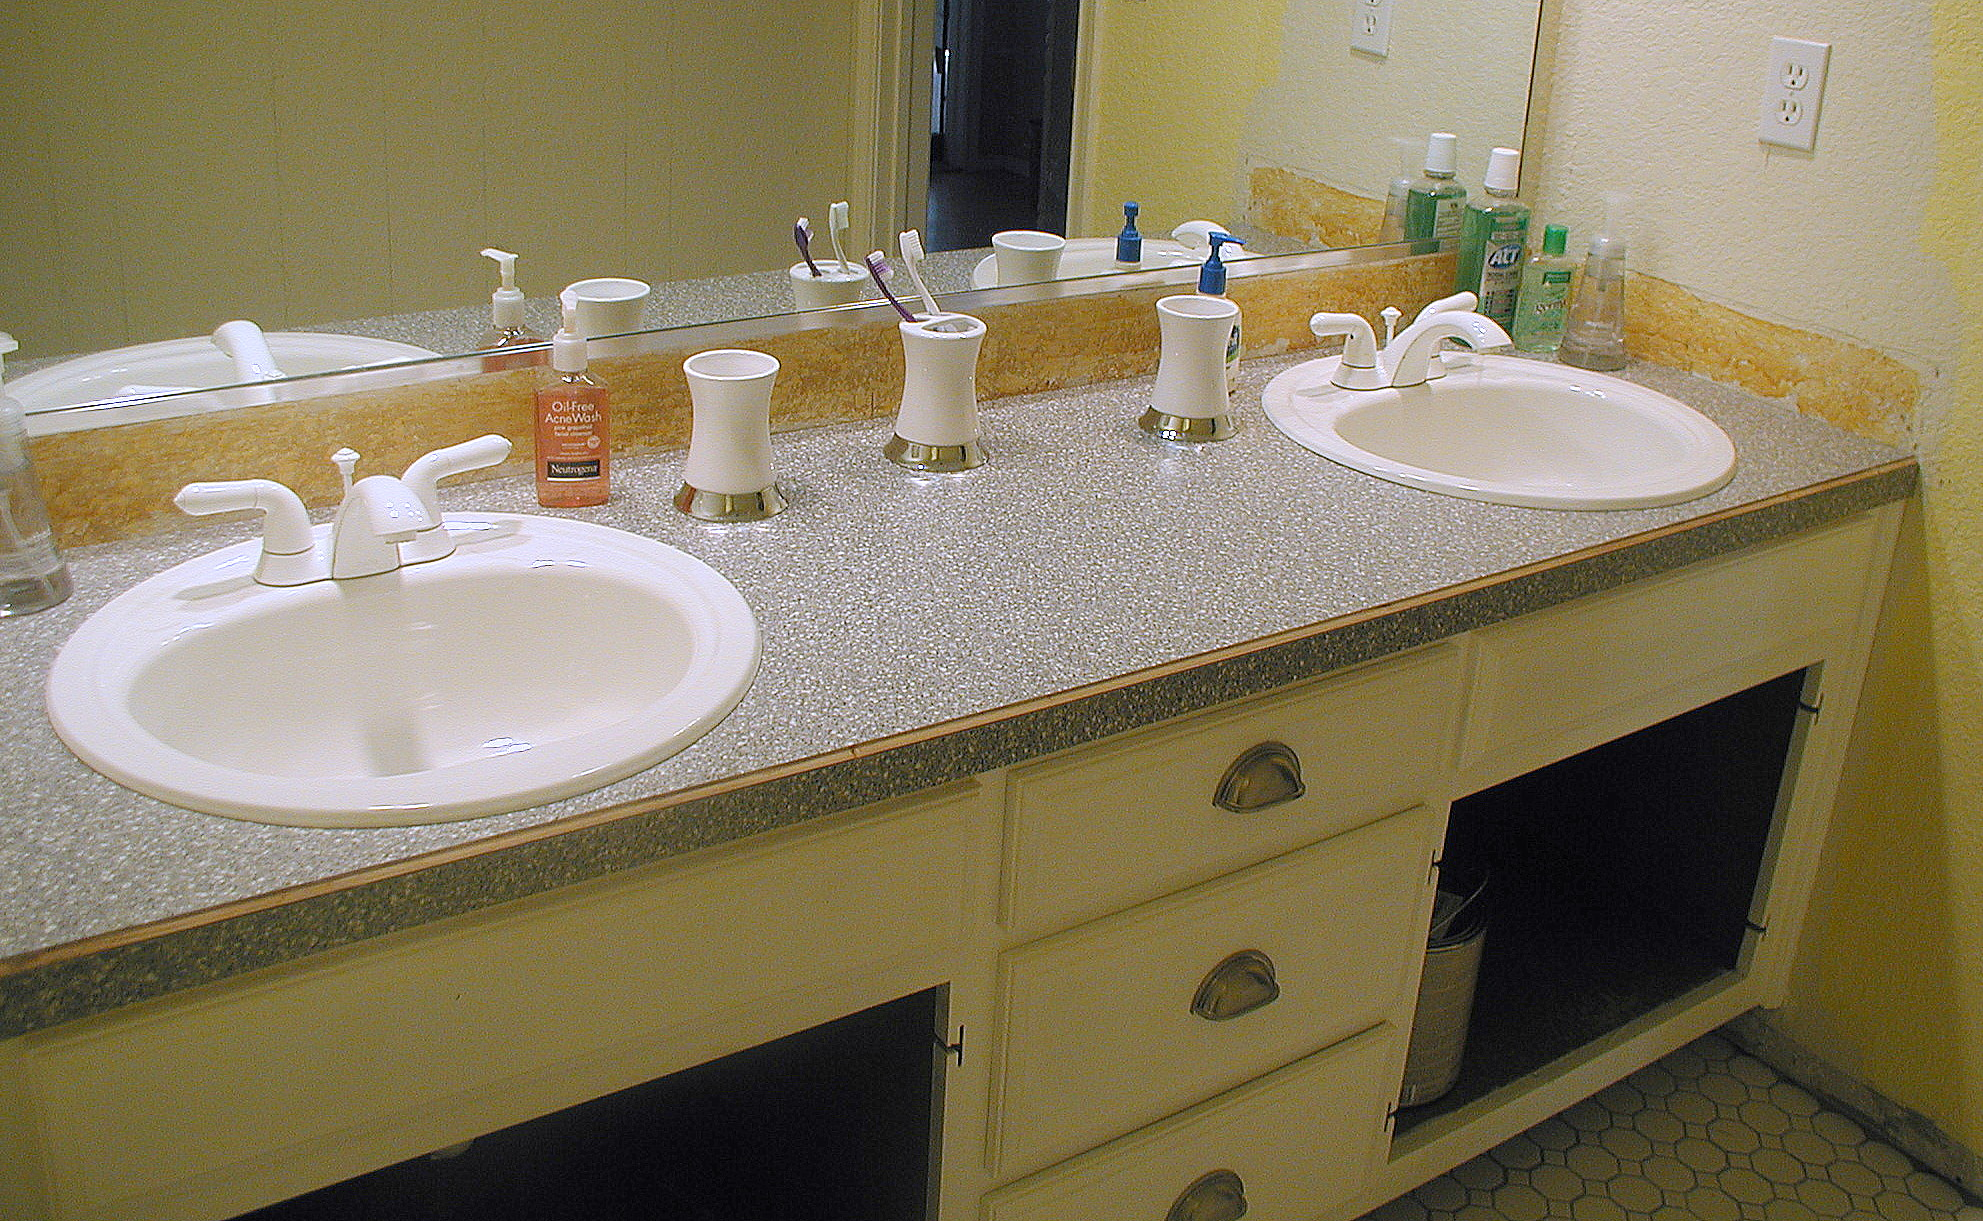 Best Countertops For Bathrooms Project Bathroom Vanity With Laminate Over Laminate